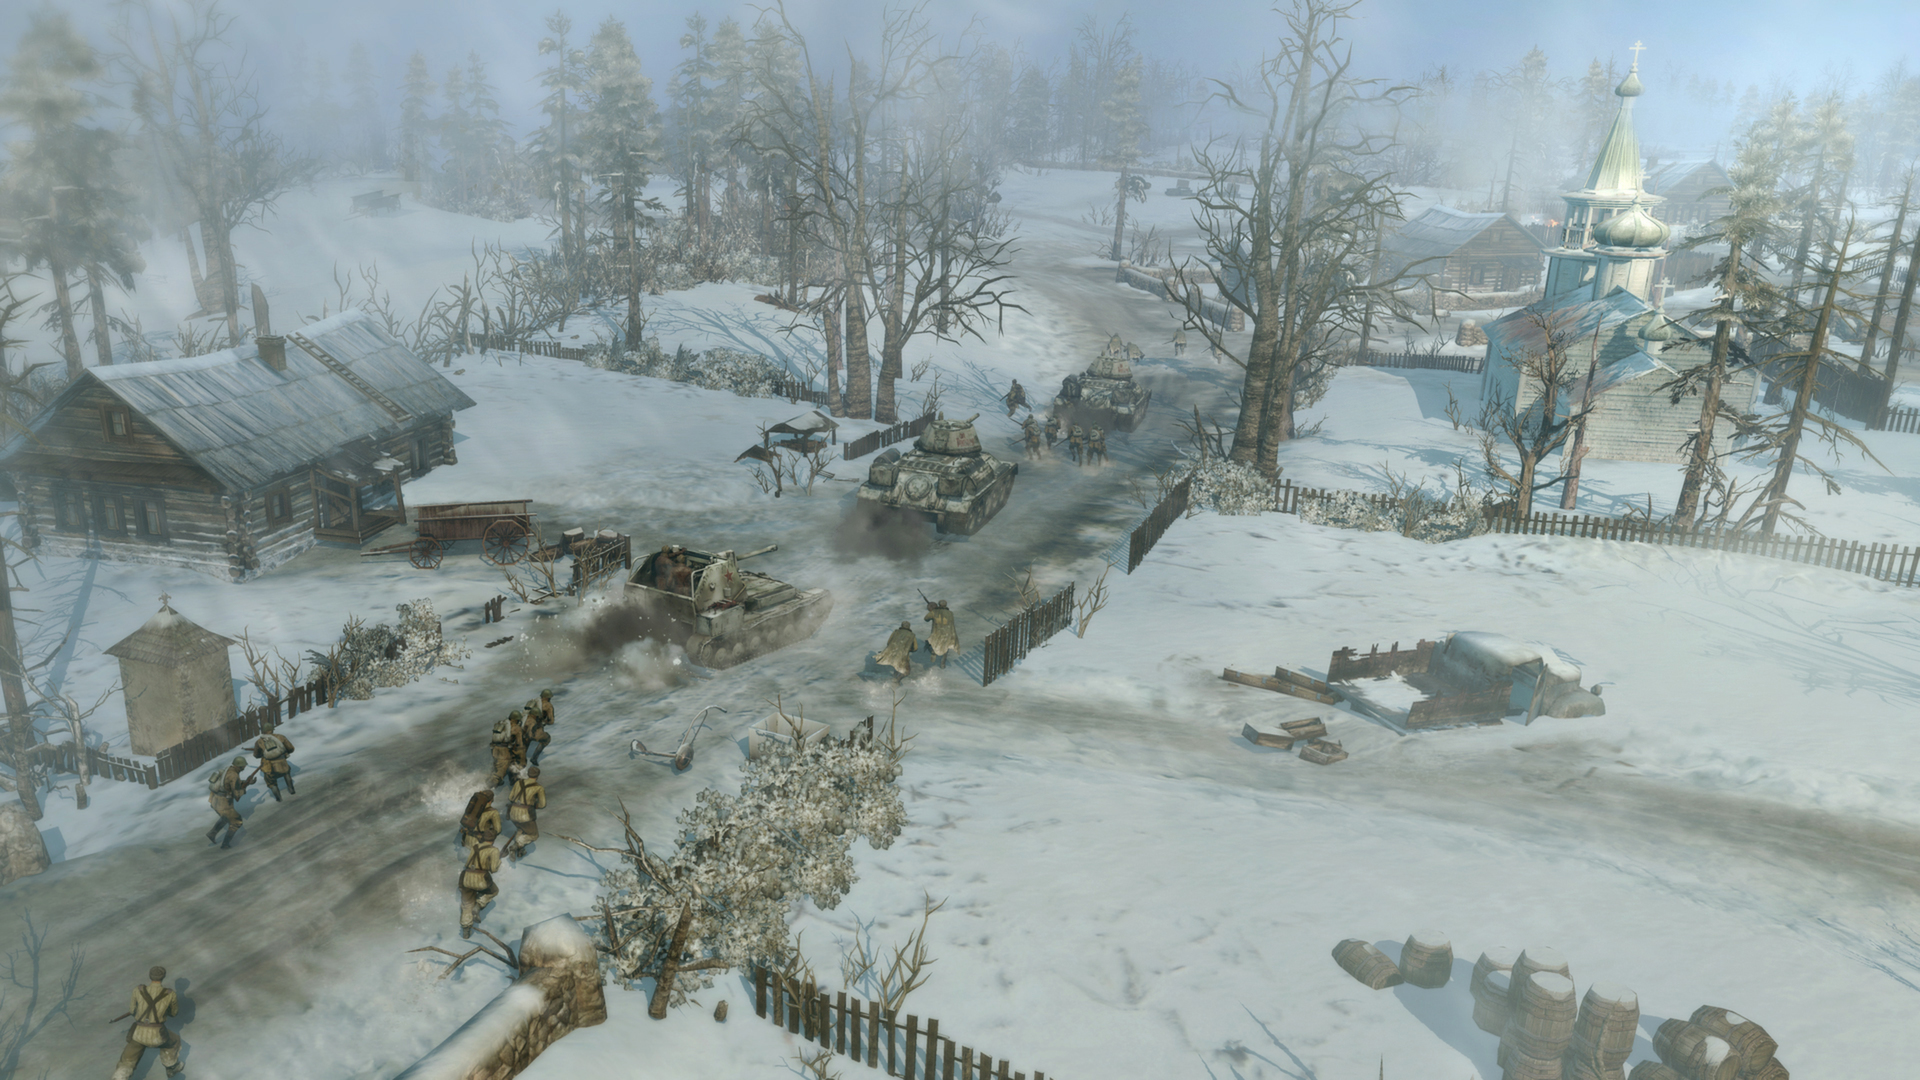 Coh 2 Case Blue : Blue man group company of heroes s case blue dlc out today pc